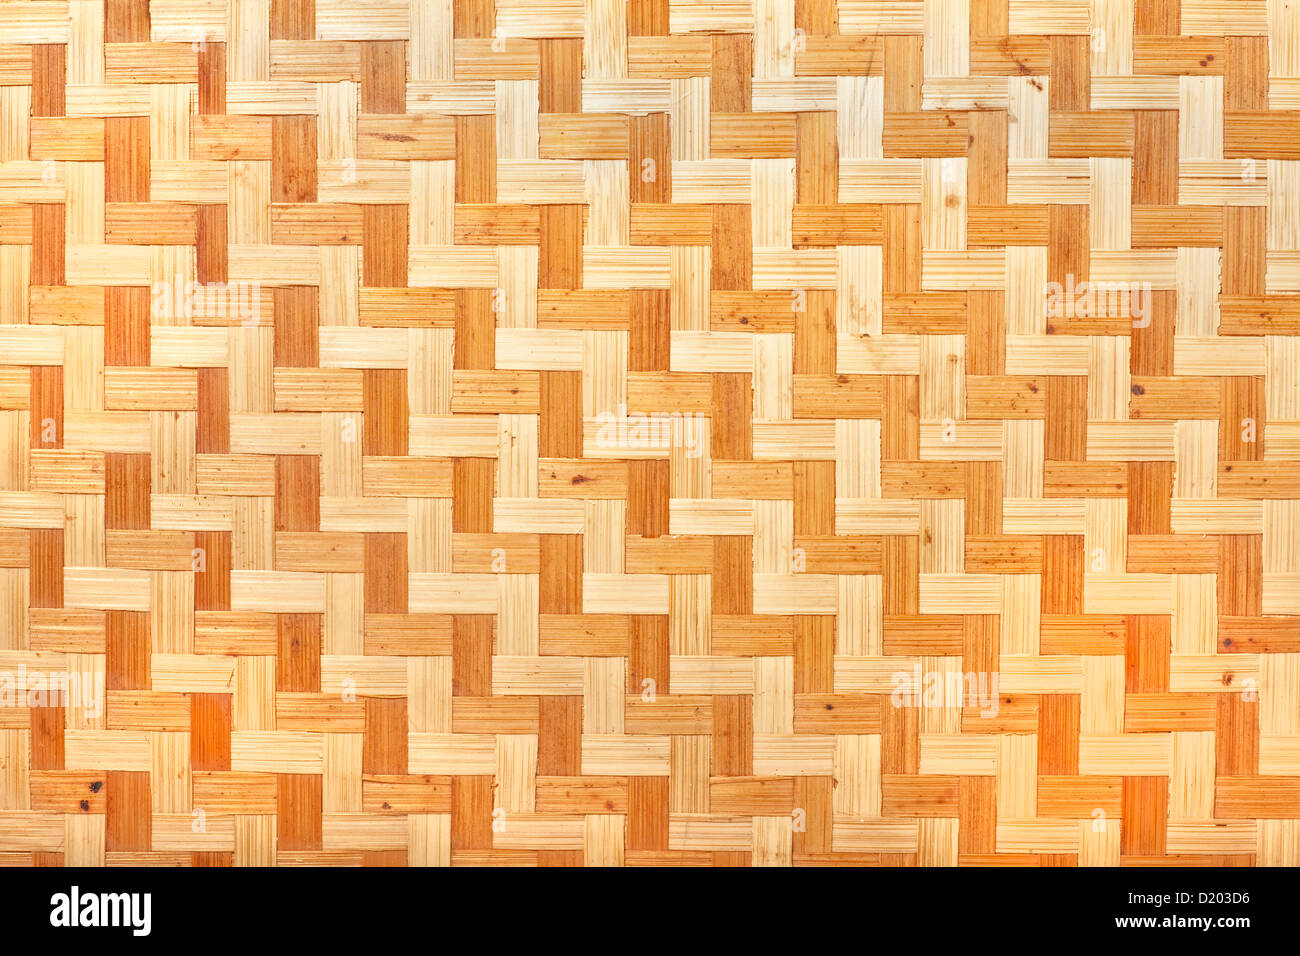 Natural rattan in a woven pattern from a handmade tray. - Stock Image